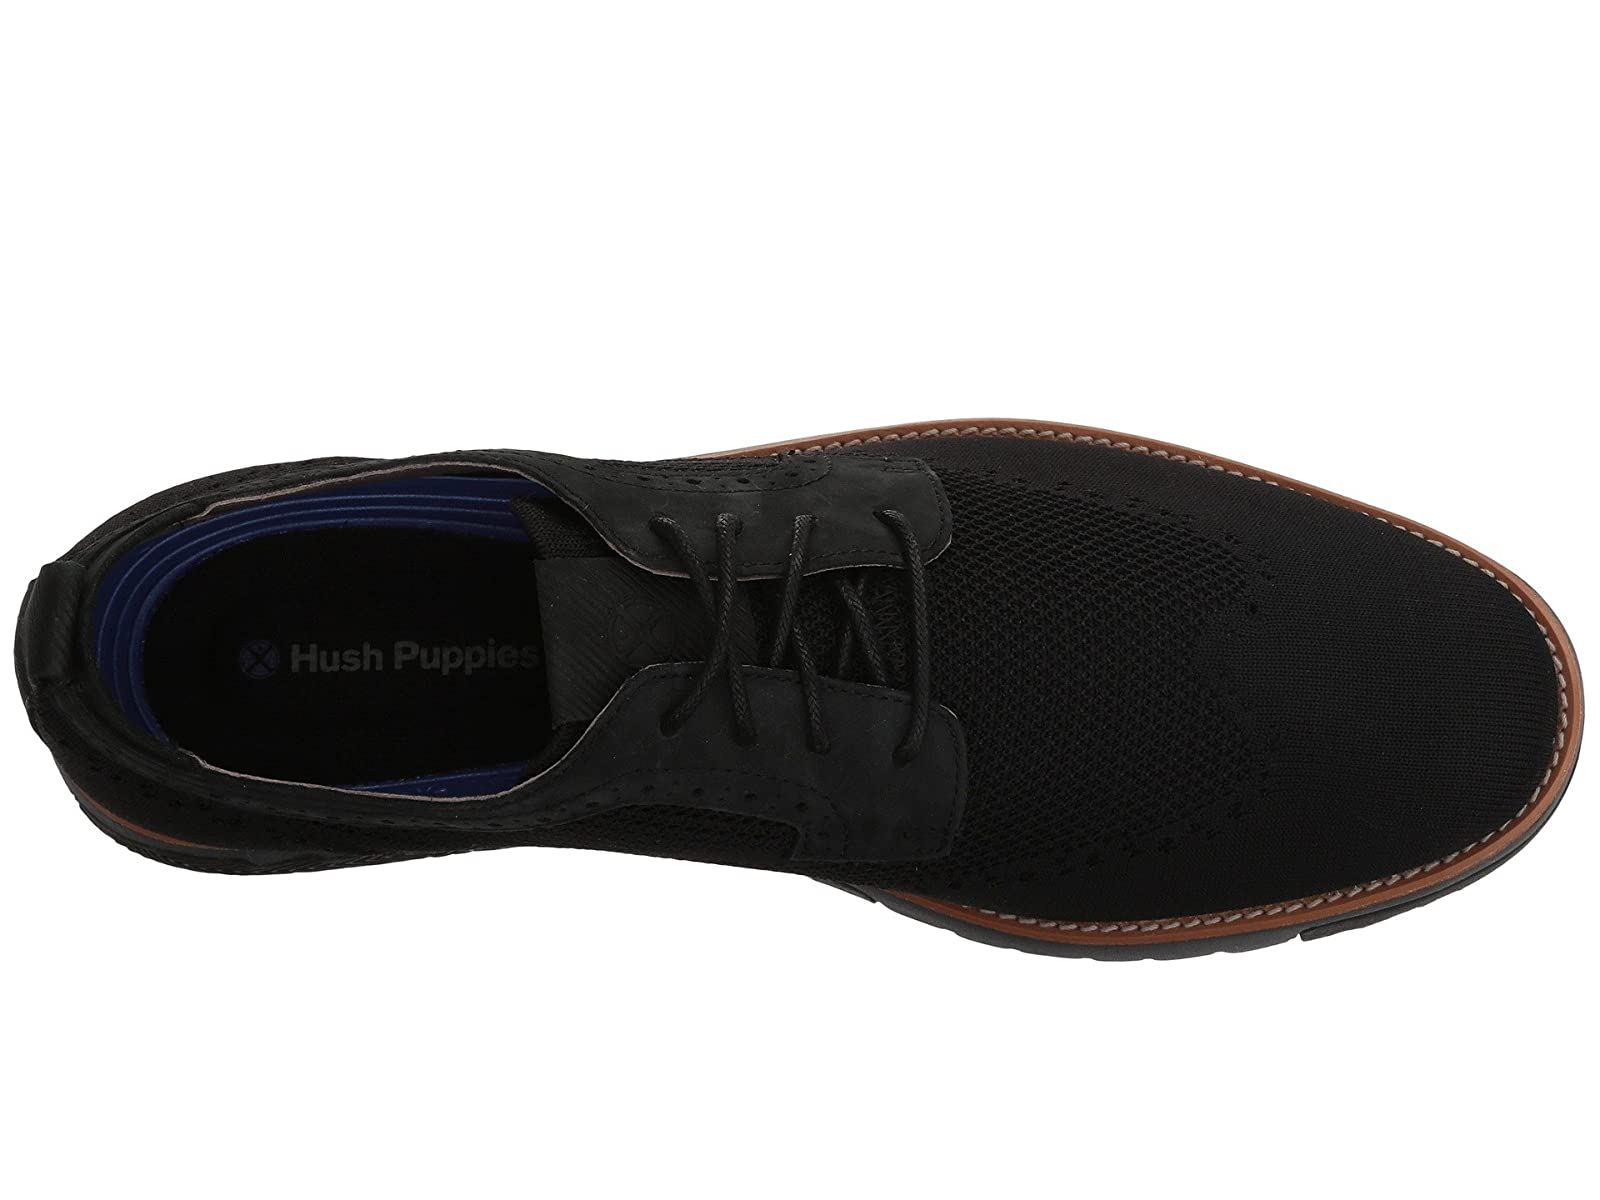 hush puppies expert wt oxford oxford oxford c96dd7